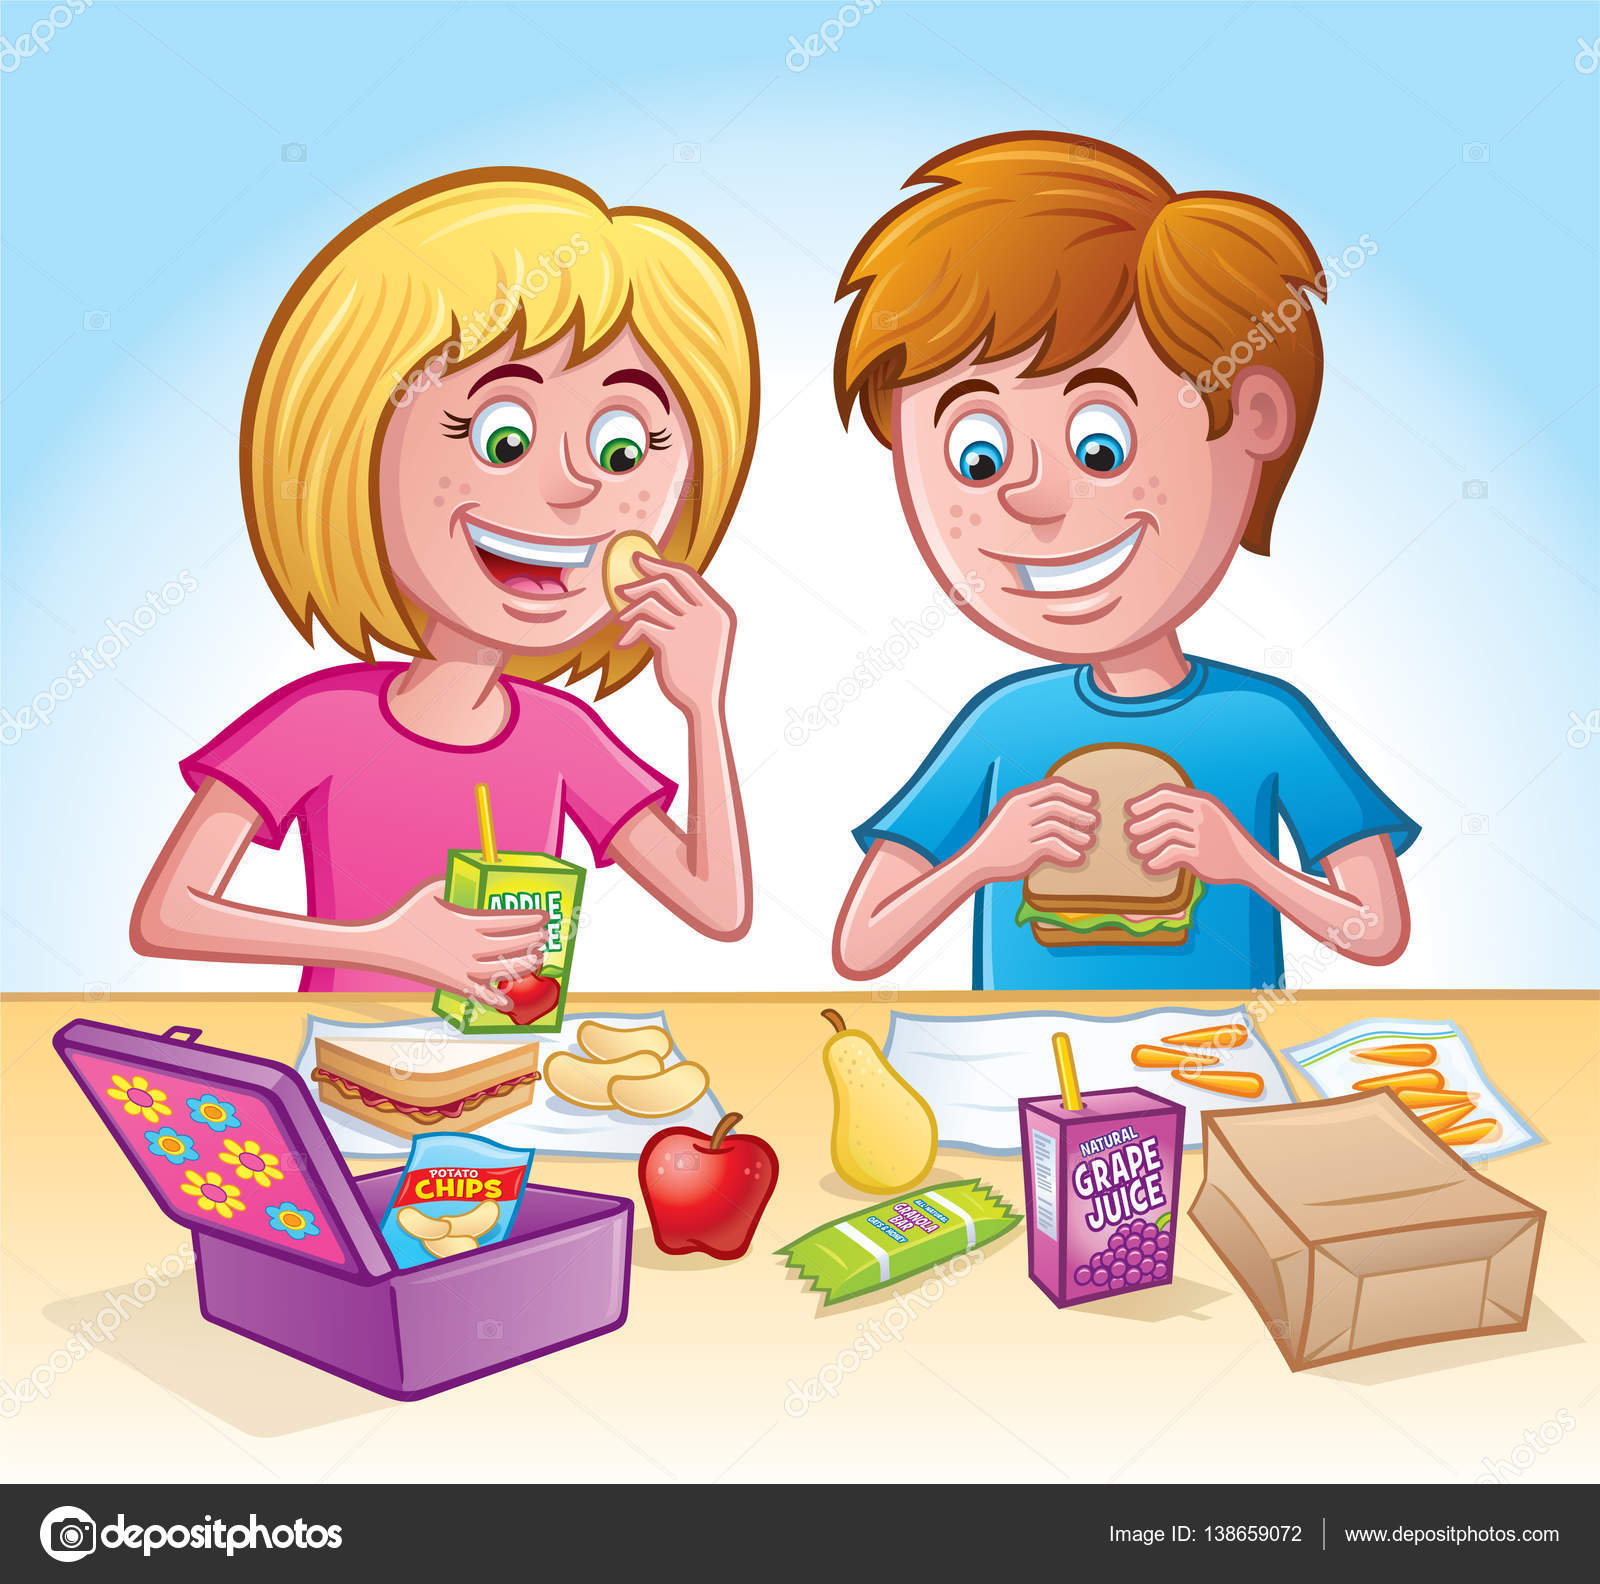 the main problems with the idea of setting up a snack shop at school Delays when setting up your business, you may come across individuals or organizations that delay your progress some delays are manageable while others are completely out of your control.